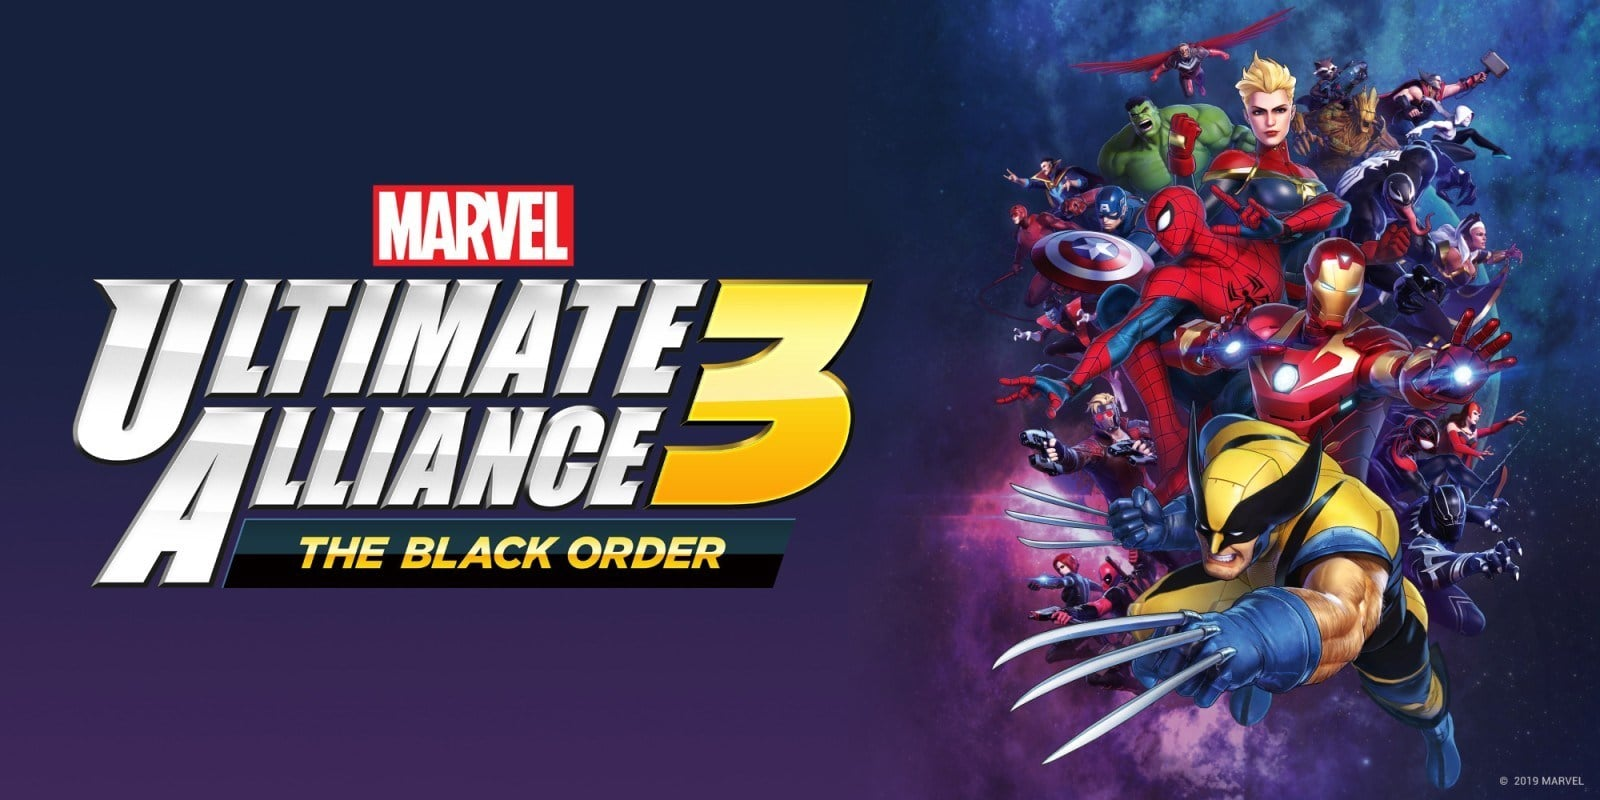 Marvel Ultimate Alliance 3 has 49 DLC Character Slots, Datamining Reveals